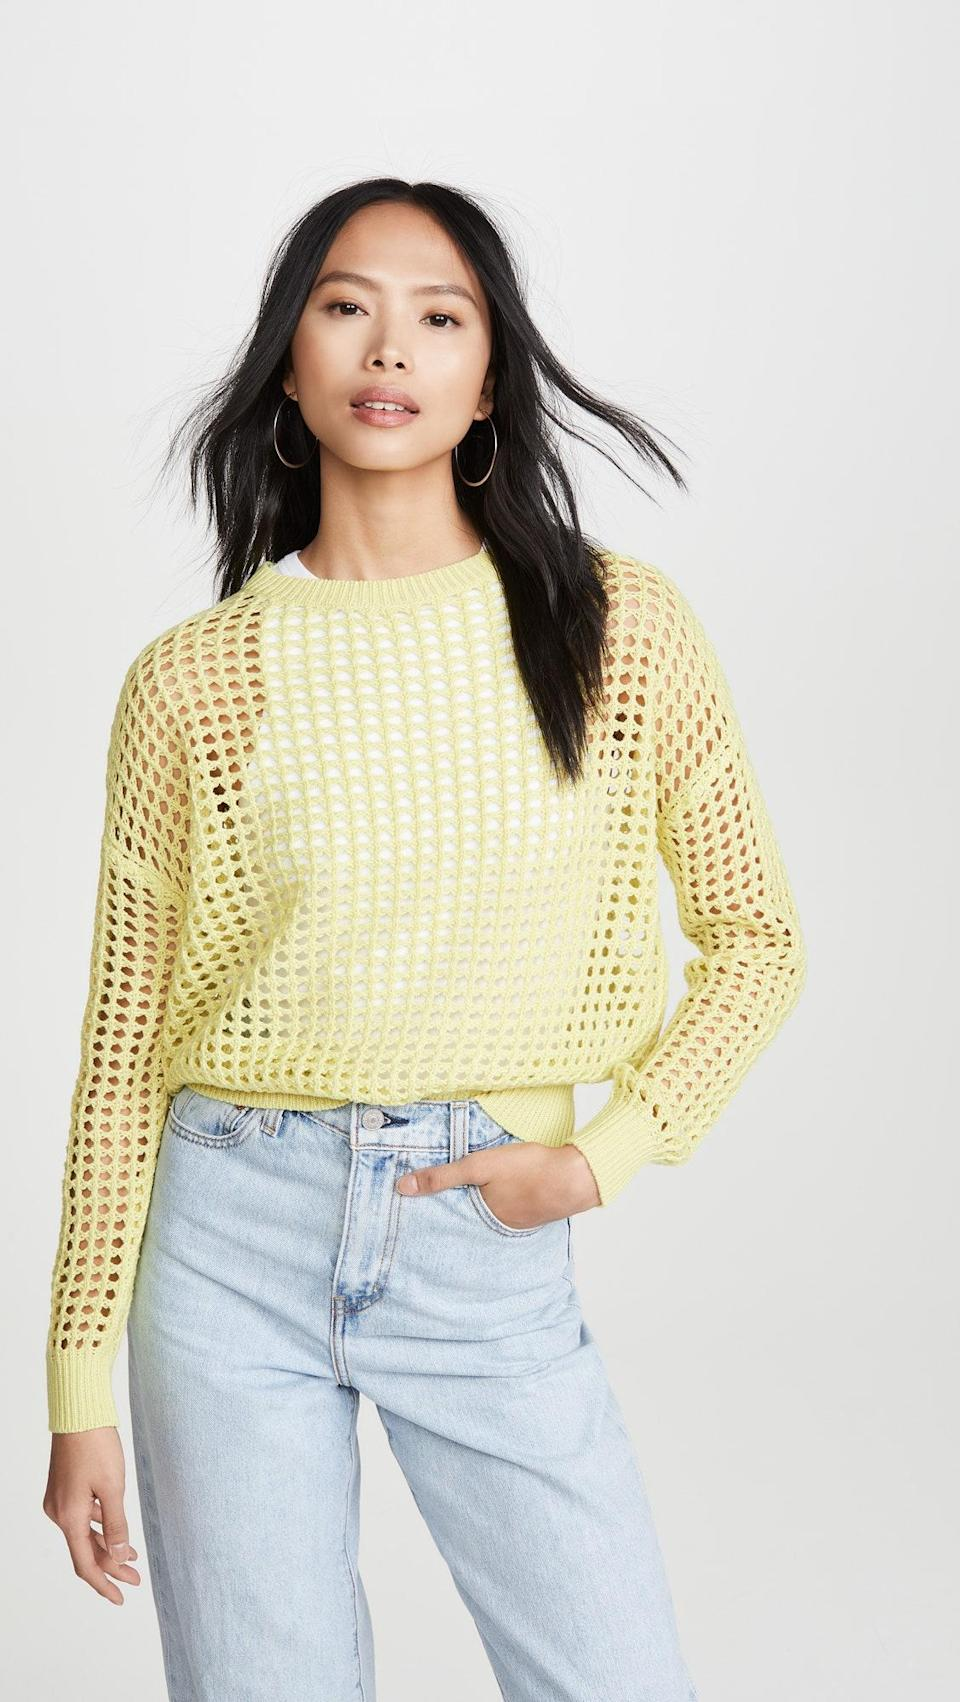 """Crochet sweaters don't exactly scream """"cold weather,"""" but when you're at home most of the time, who cares? $42, Amazon. <a href=""""https://www.amazon.com/DNA-Womens-Crochet-Sweater-Yellow/dp/B084N9SF6P?s=shopbop&ref_=sb_ts"""" rel=""""nofollow noopener"""" target=""""_blank"""" data-ylk=""""slk:Get it now!"""" class=""""link rapid-noclick-resp"""">Get it now!</a>"""